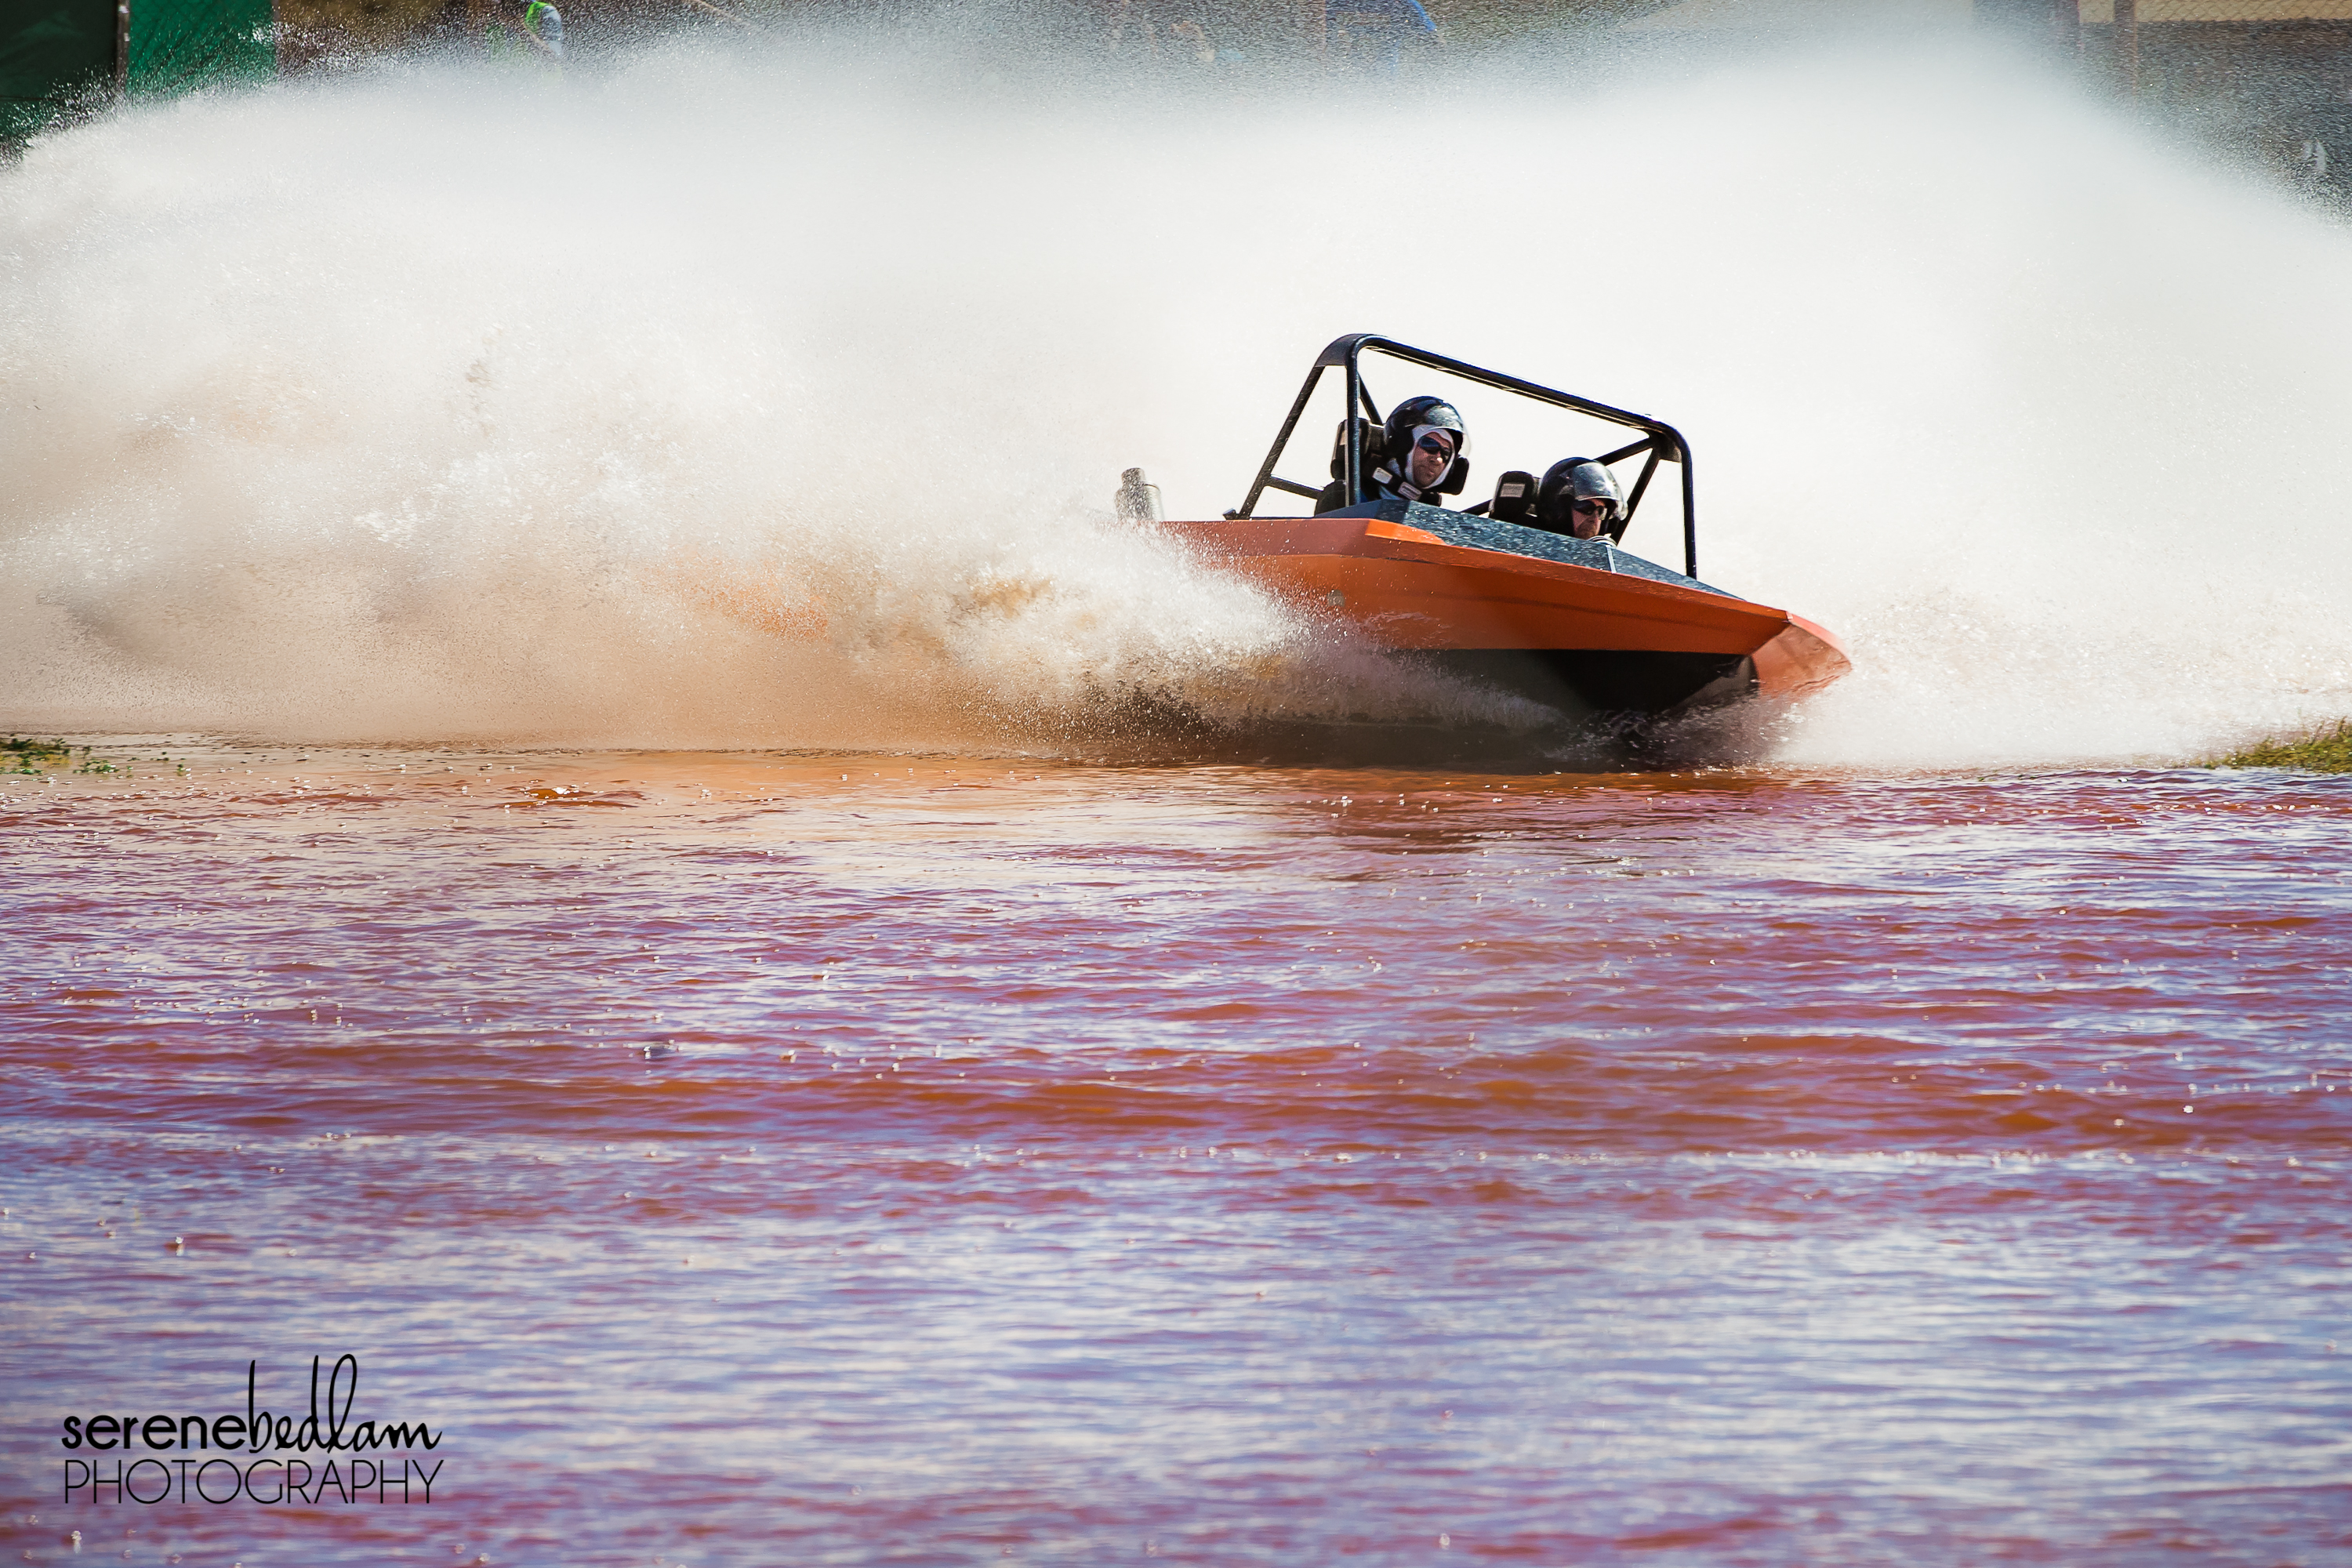 Newman Jetboats 2016 Serene Bedlam Photography